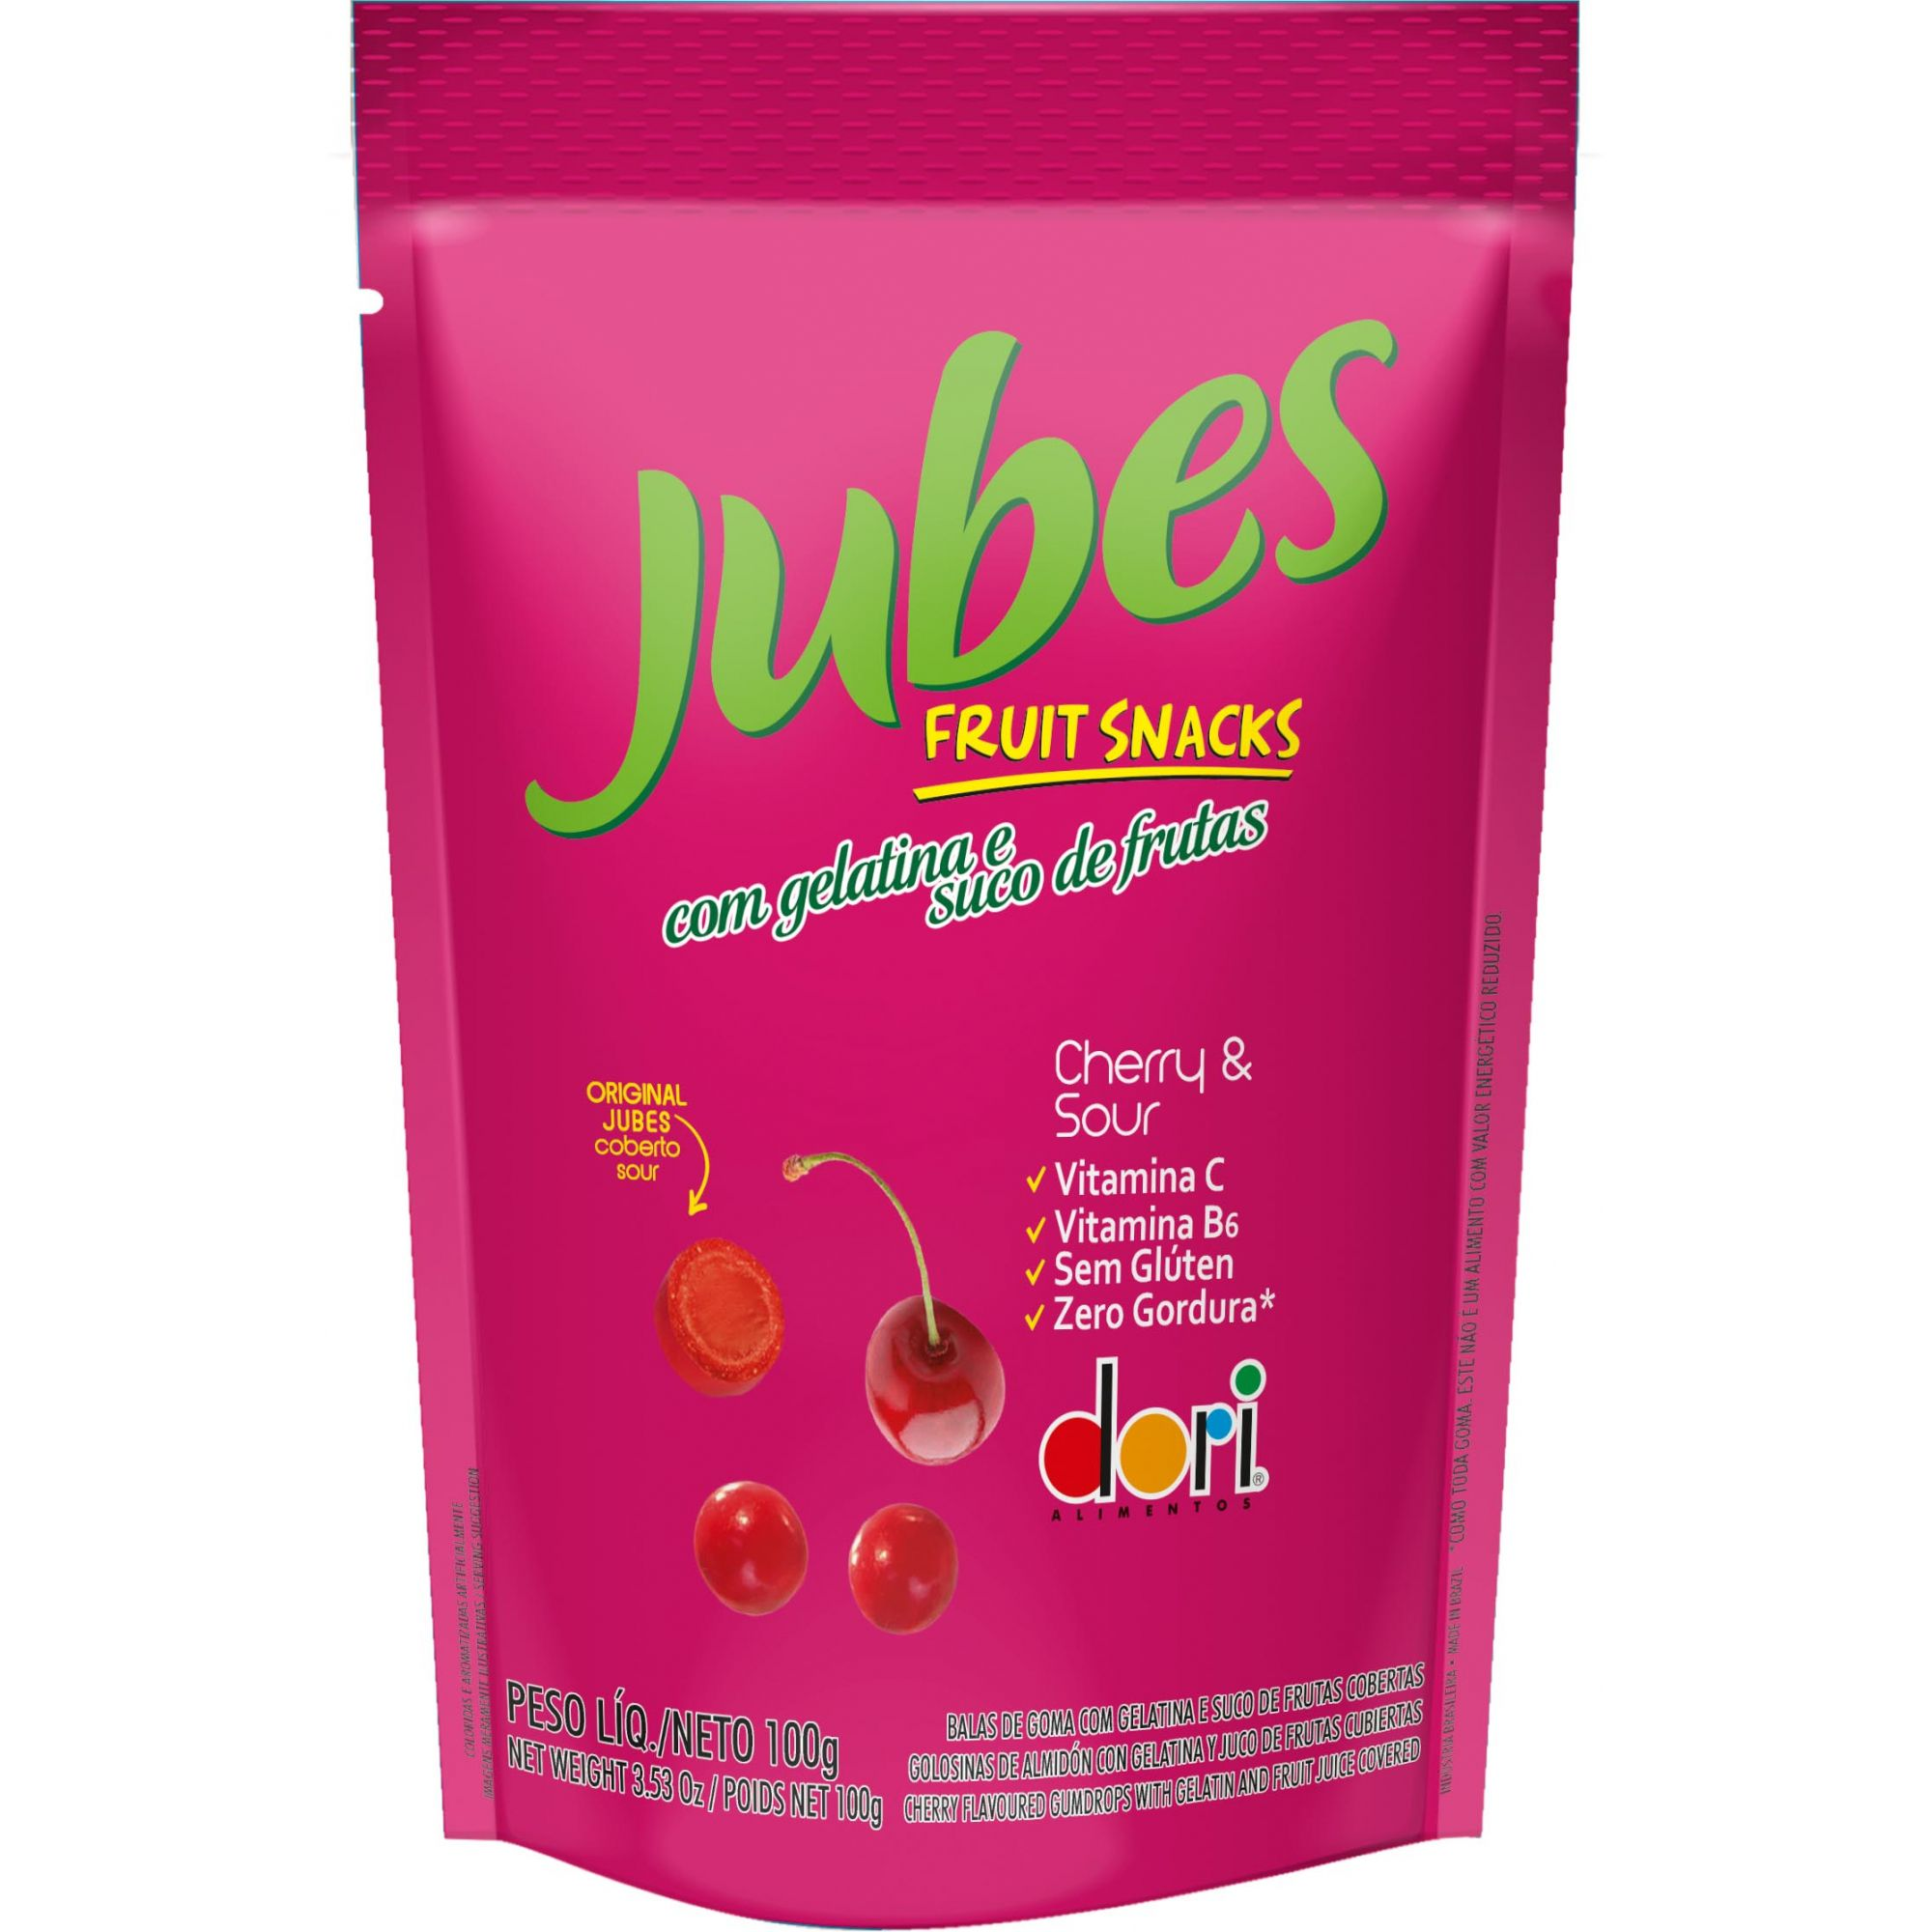 Dori - Jubes Fruit Snacks Sabor Cereja 100g